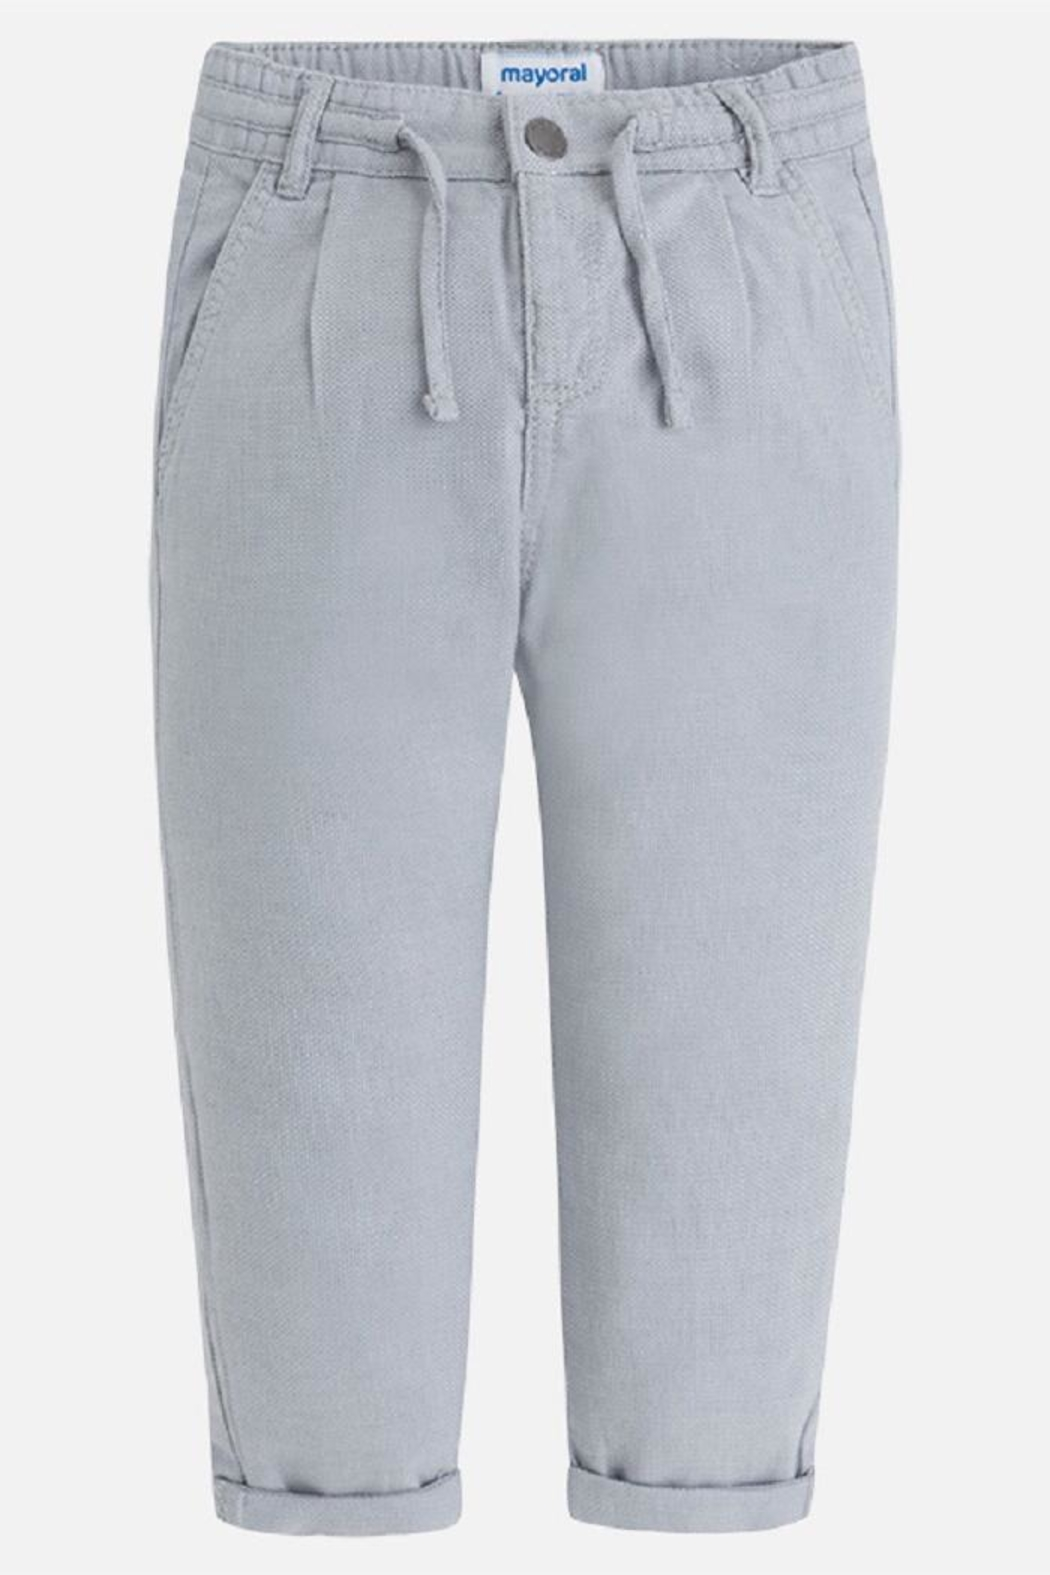 Mayoral Relaxed Chino Pant - Front Cropped Image